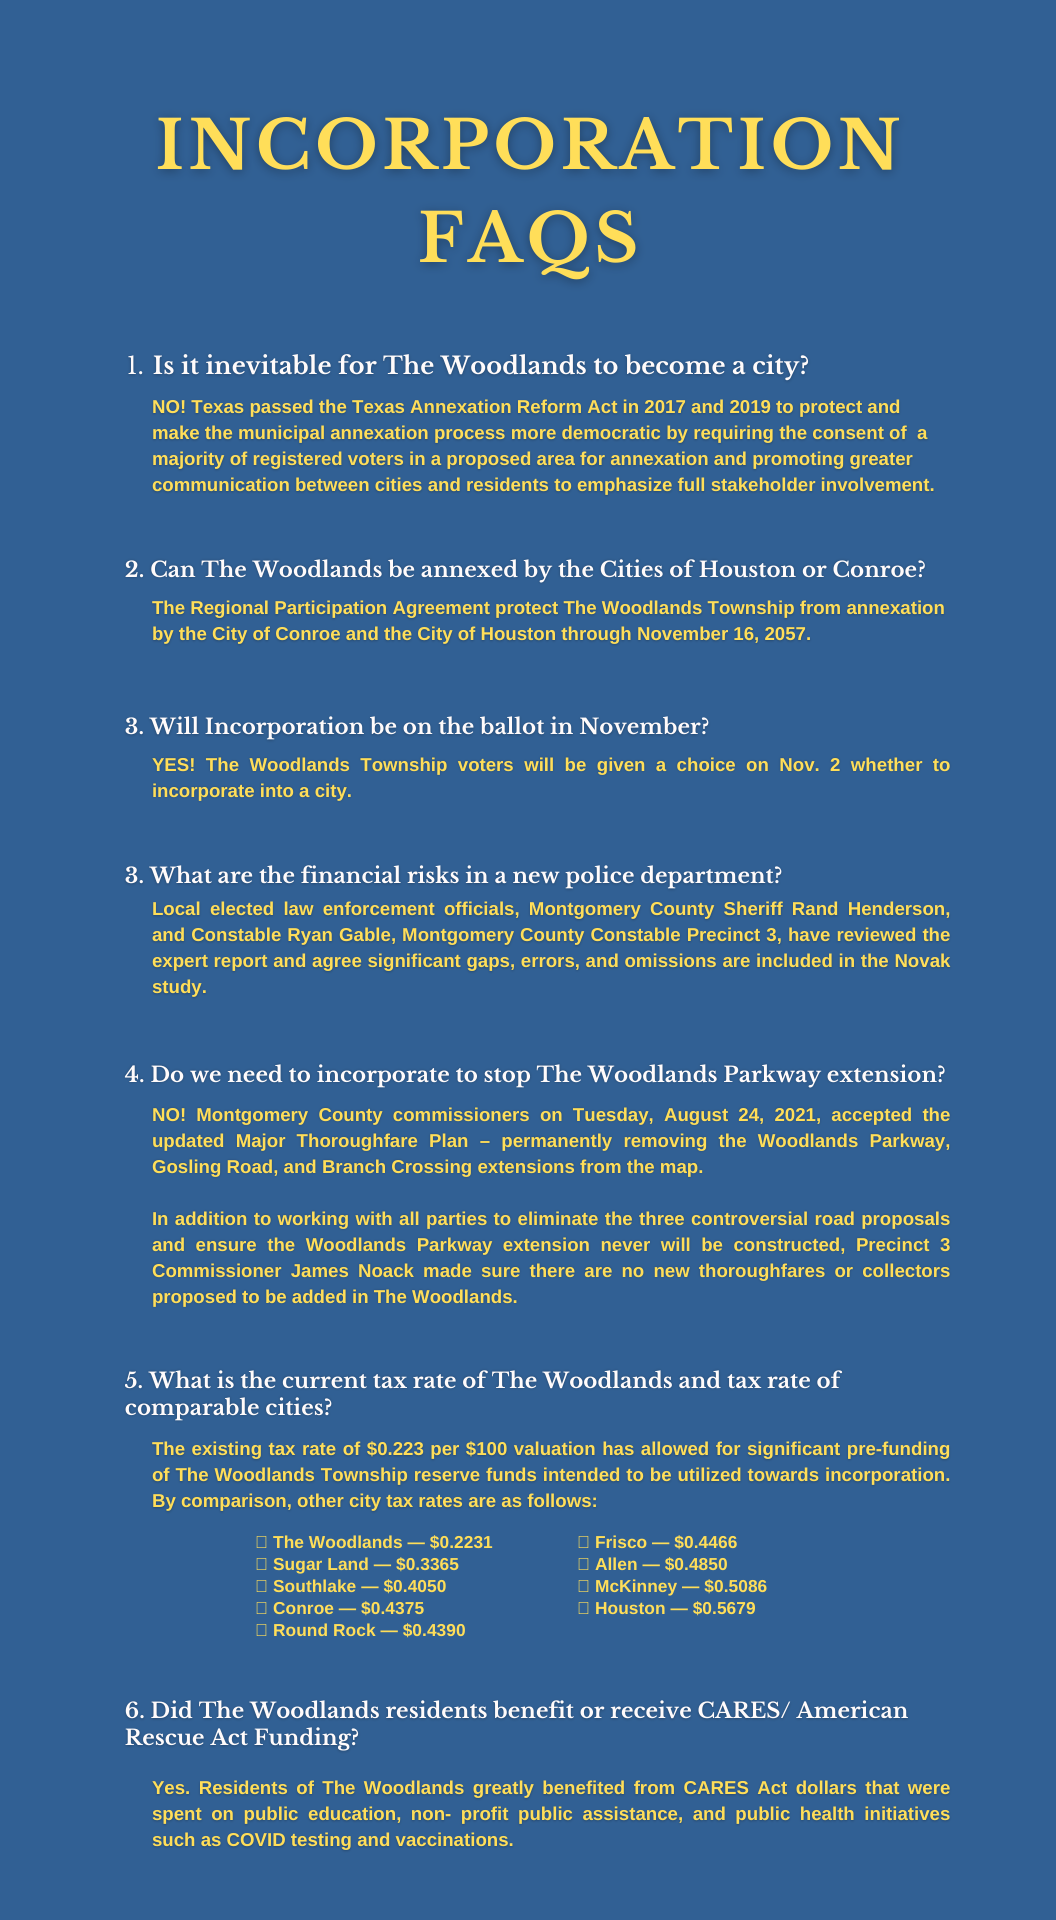 Overall-Incorporation-FAQ-(1056-x-1920-px).png